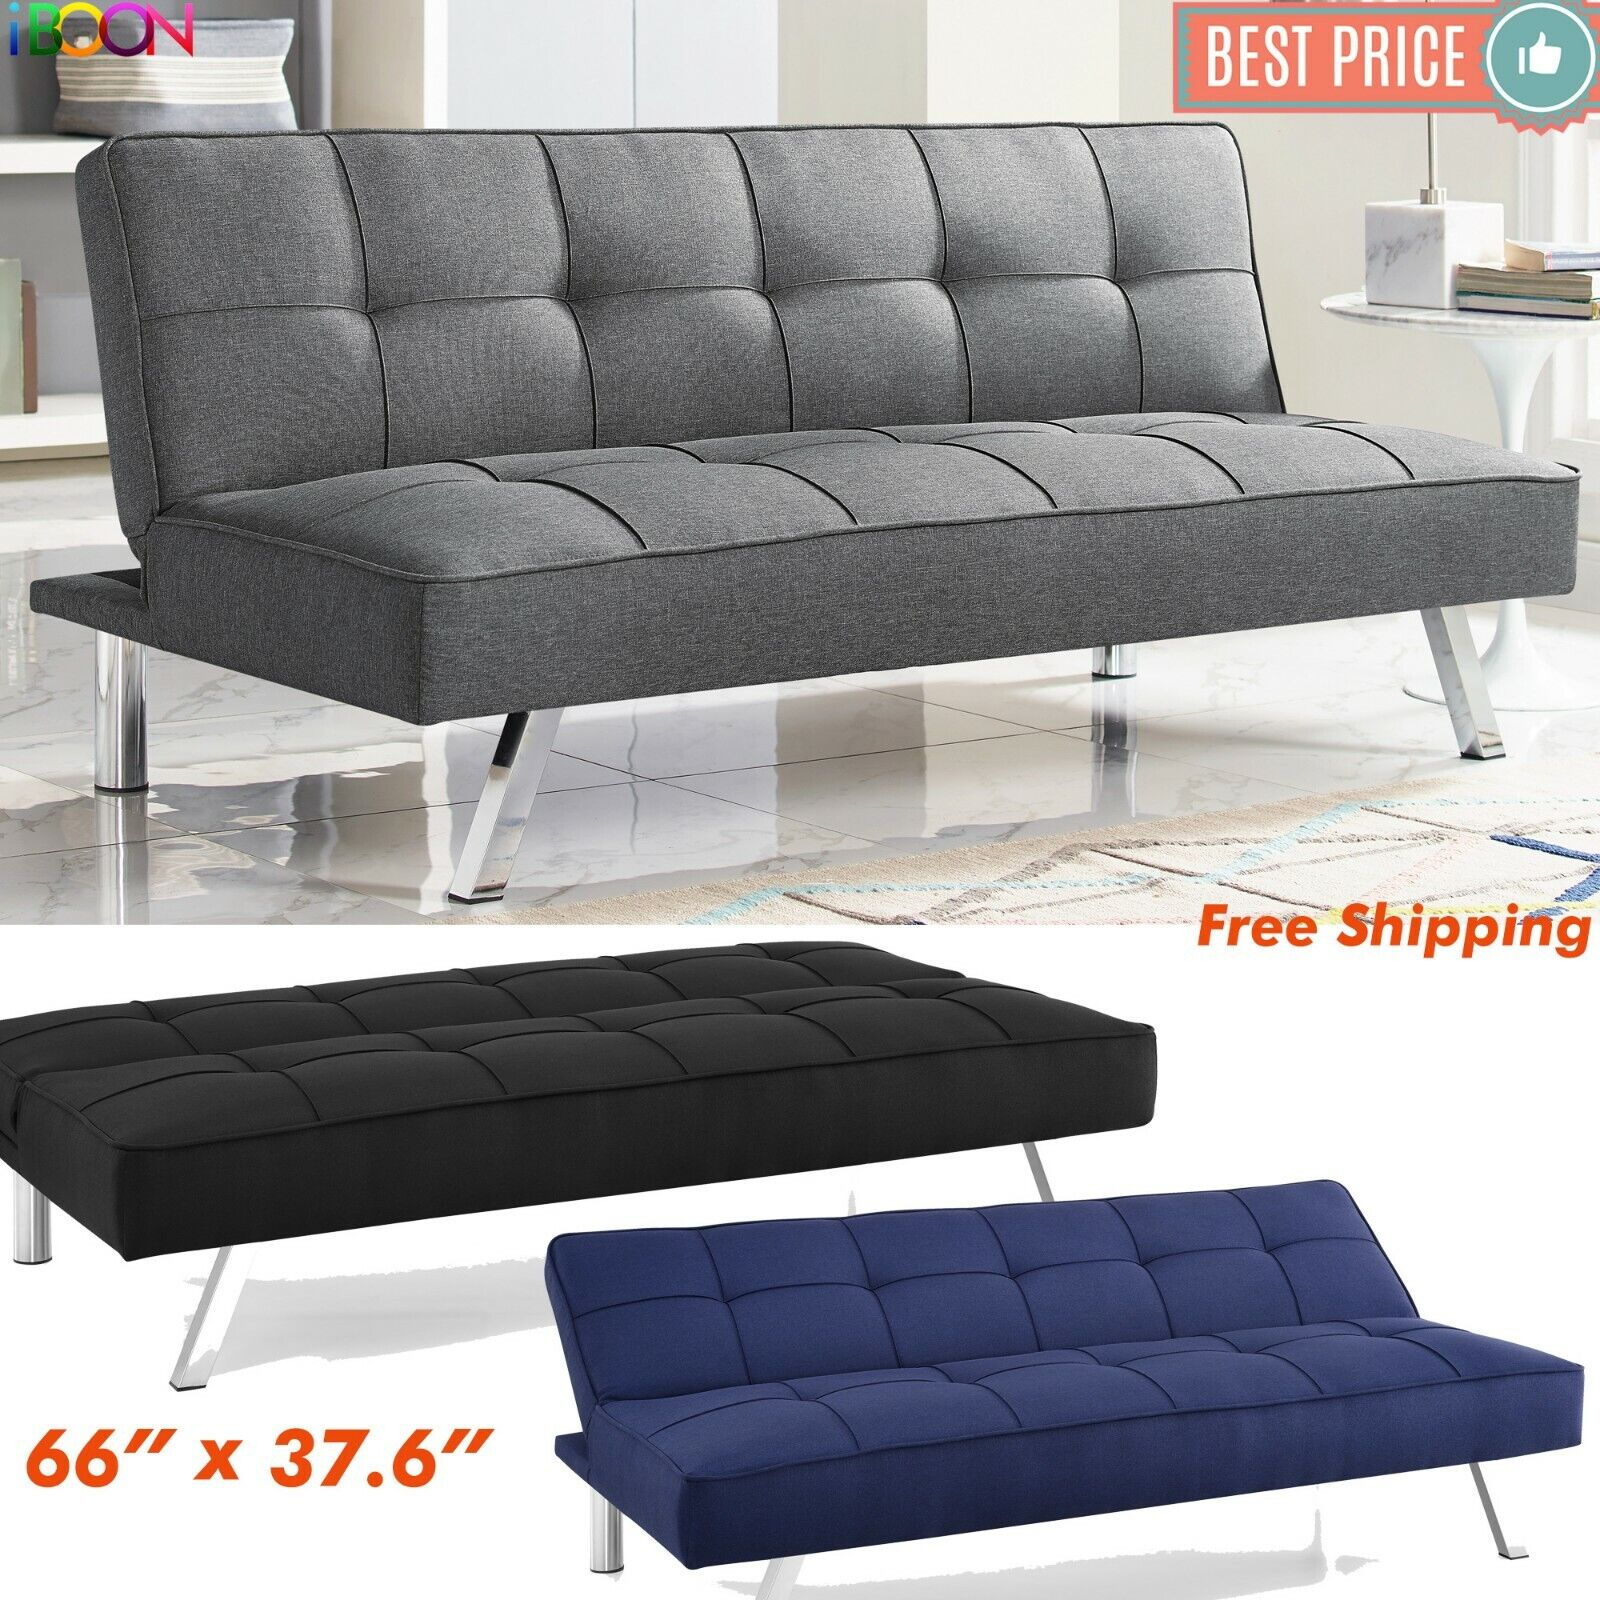 Futon Sofa In Black Finish Sets